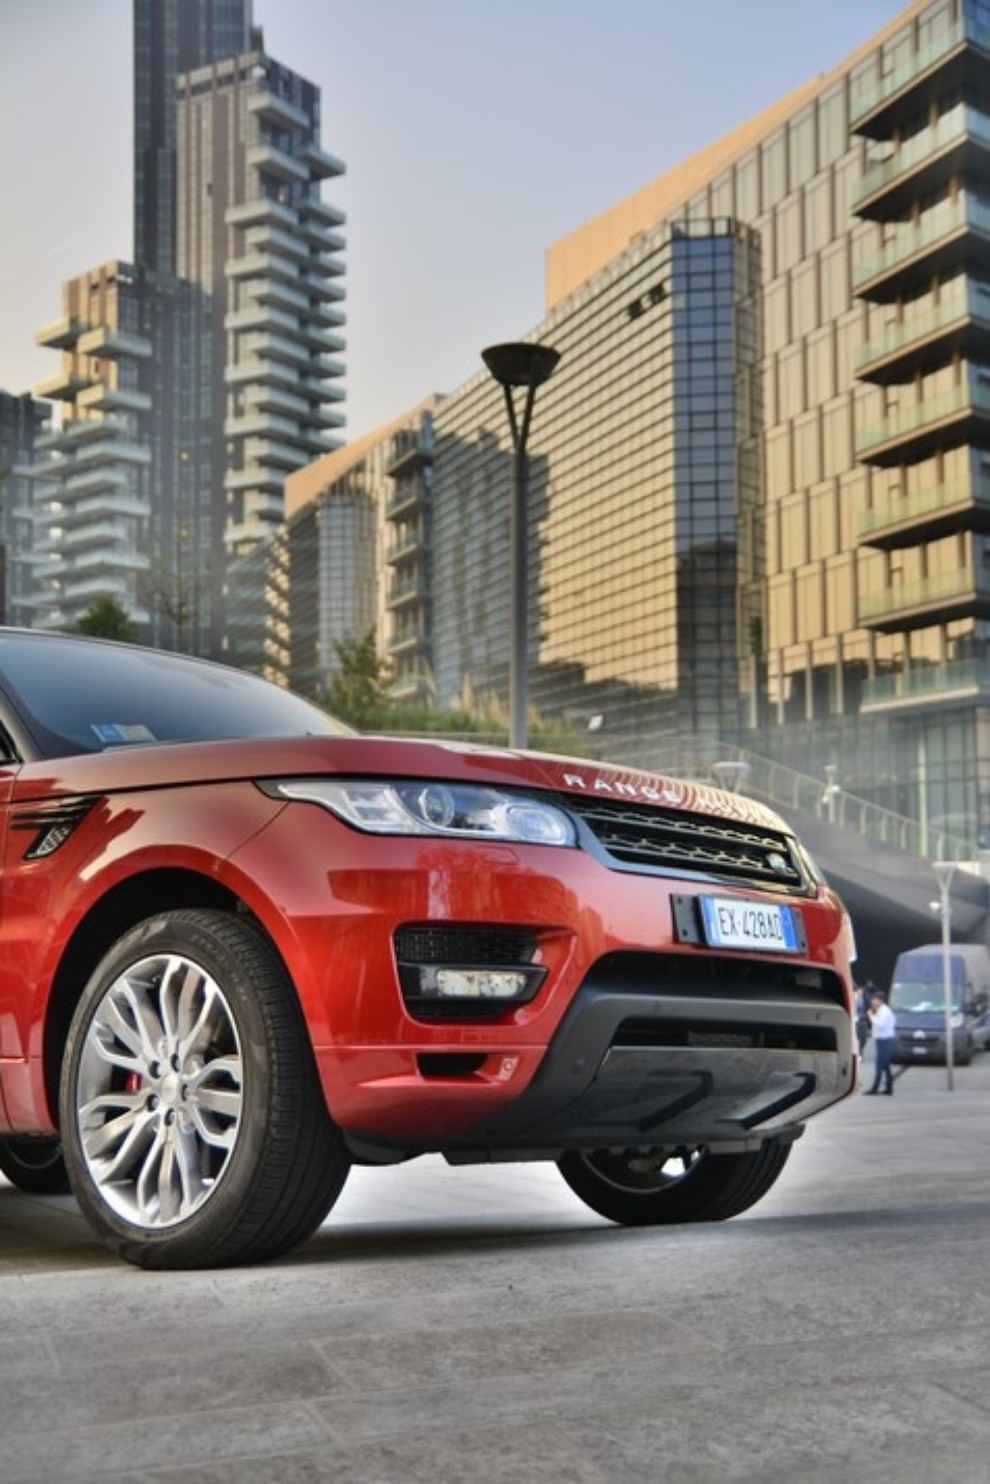 Land Rover New Discovery By Invitation Only Roma – Milano - Foto 11 di 12